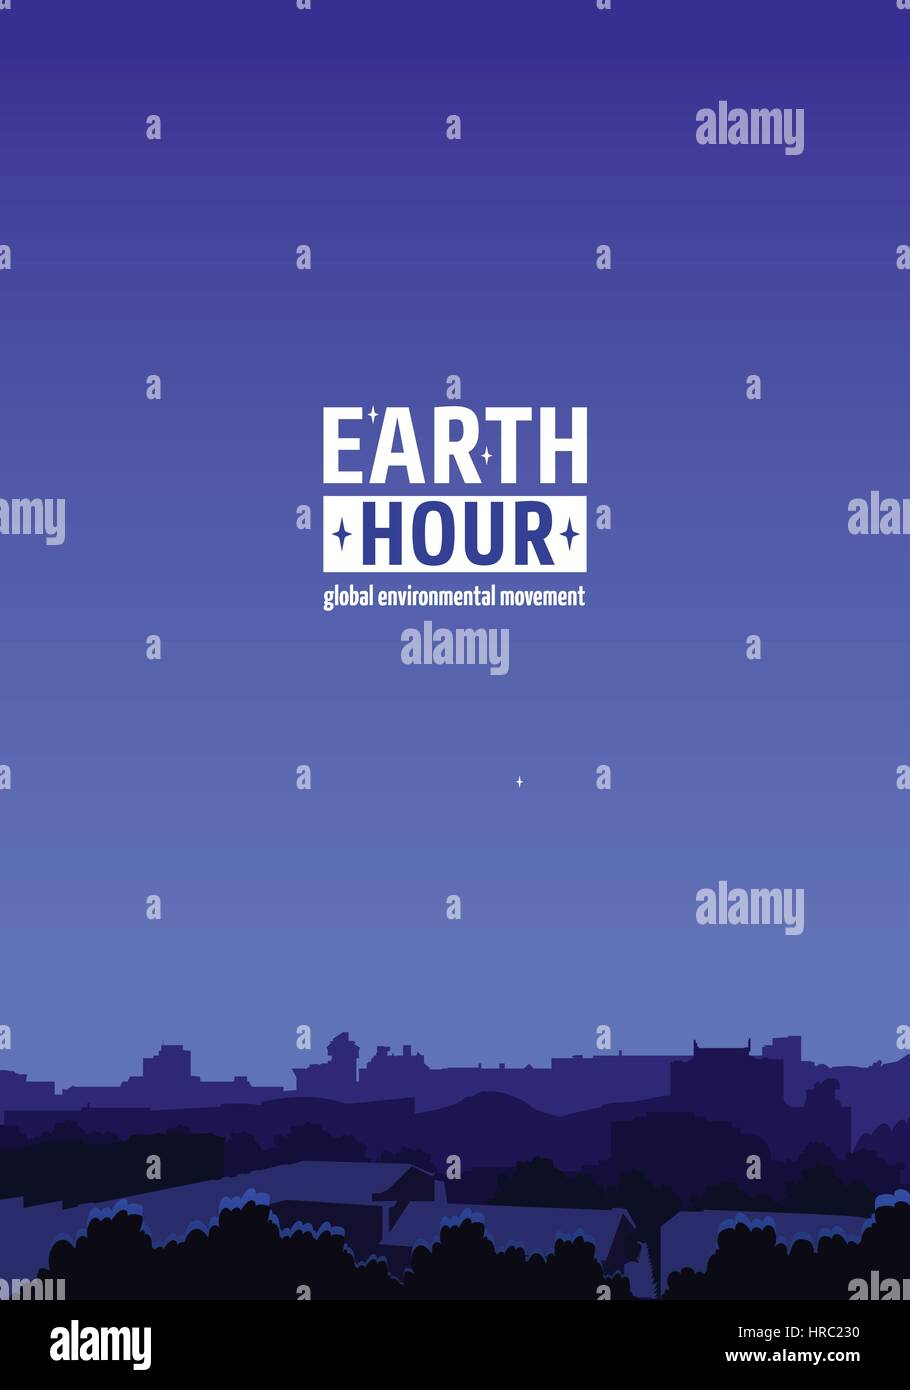 Earth Hour Movement Illustration. Vertical background with dark city view. Vector template for banner, card or poster. - Stock Vector